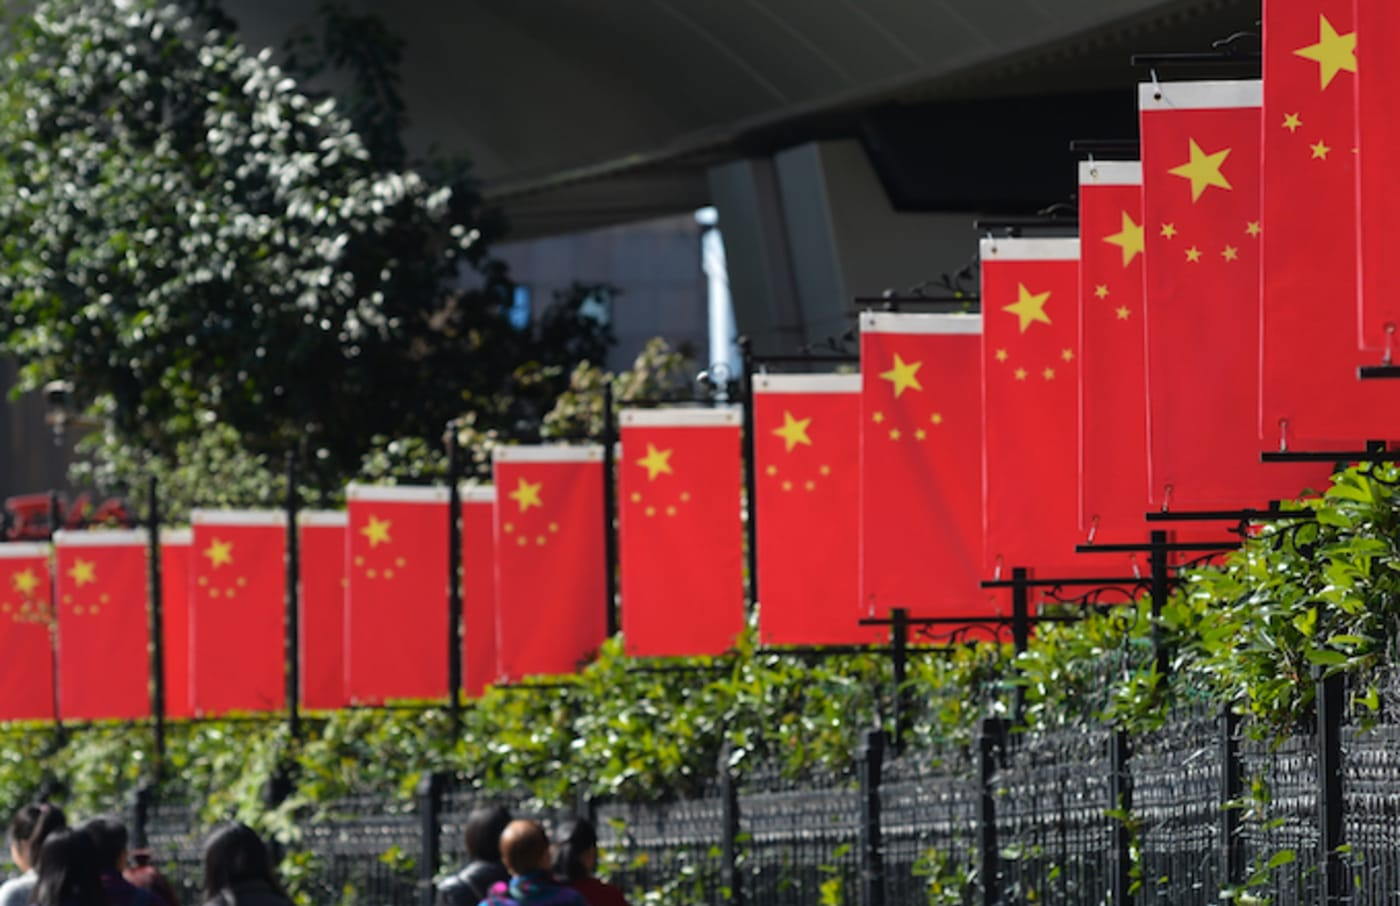 A view of China National Flags seen in Shanghai city center.